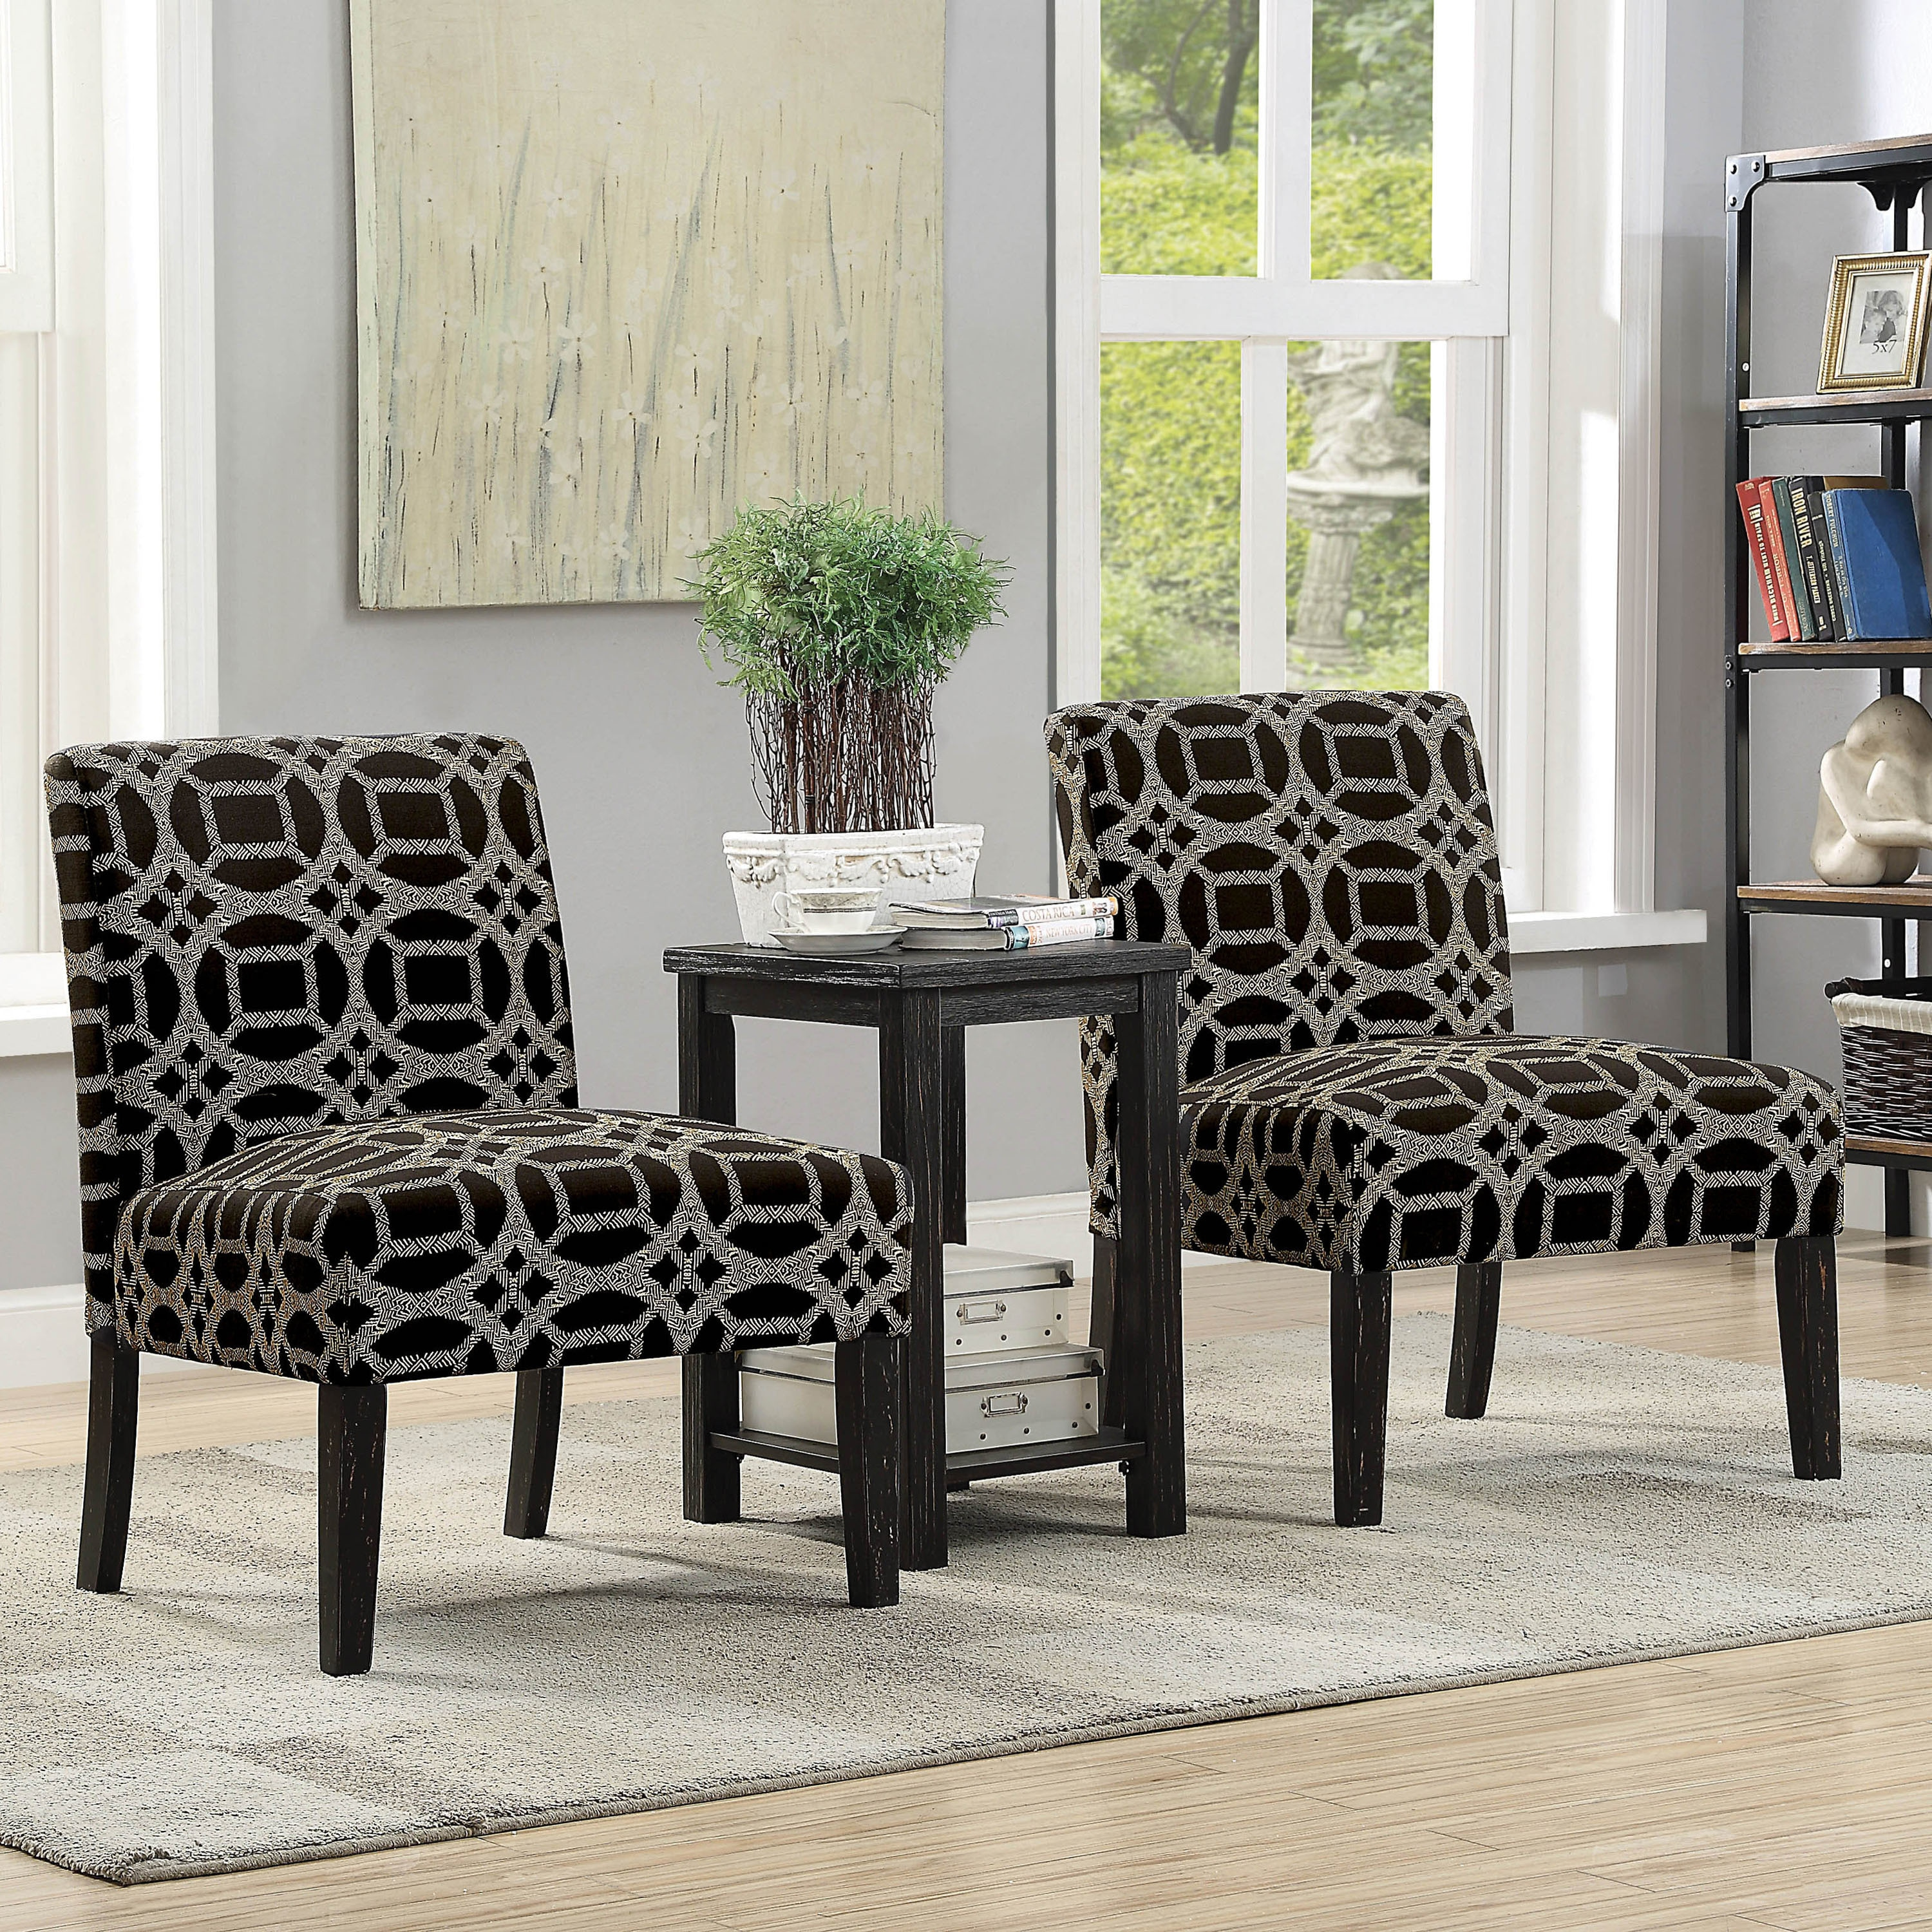 Furniture Of America Loo Modern Black 3 Piece Table And 2 Chairs Set